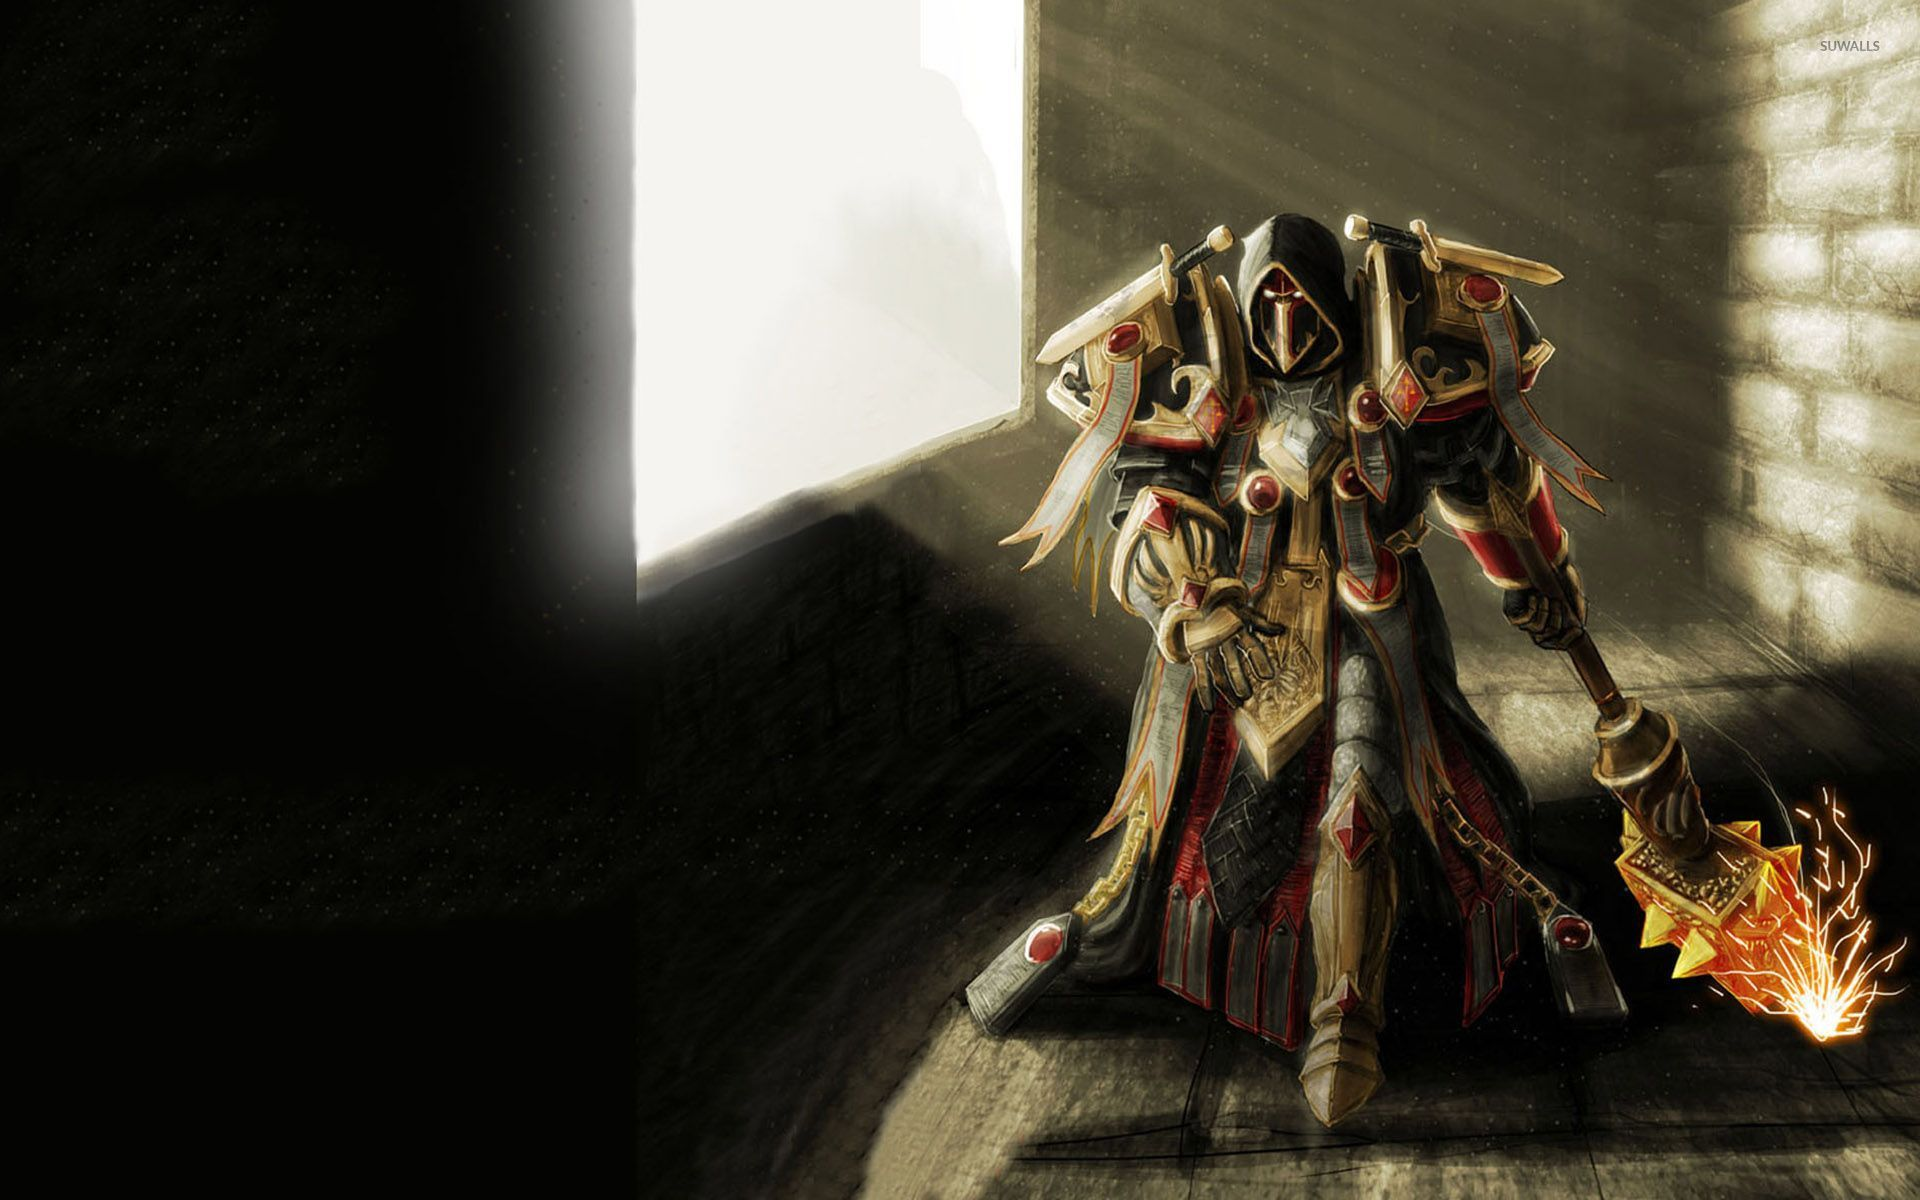 Free Download Wow Paladin Wallpaper 1920x1200 For Your Desktop